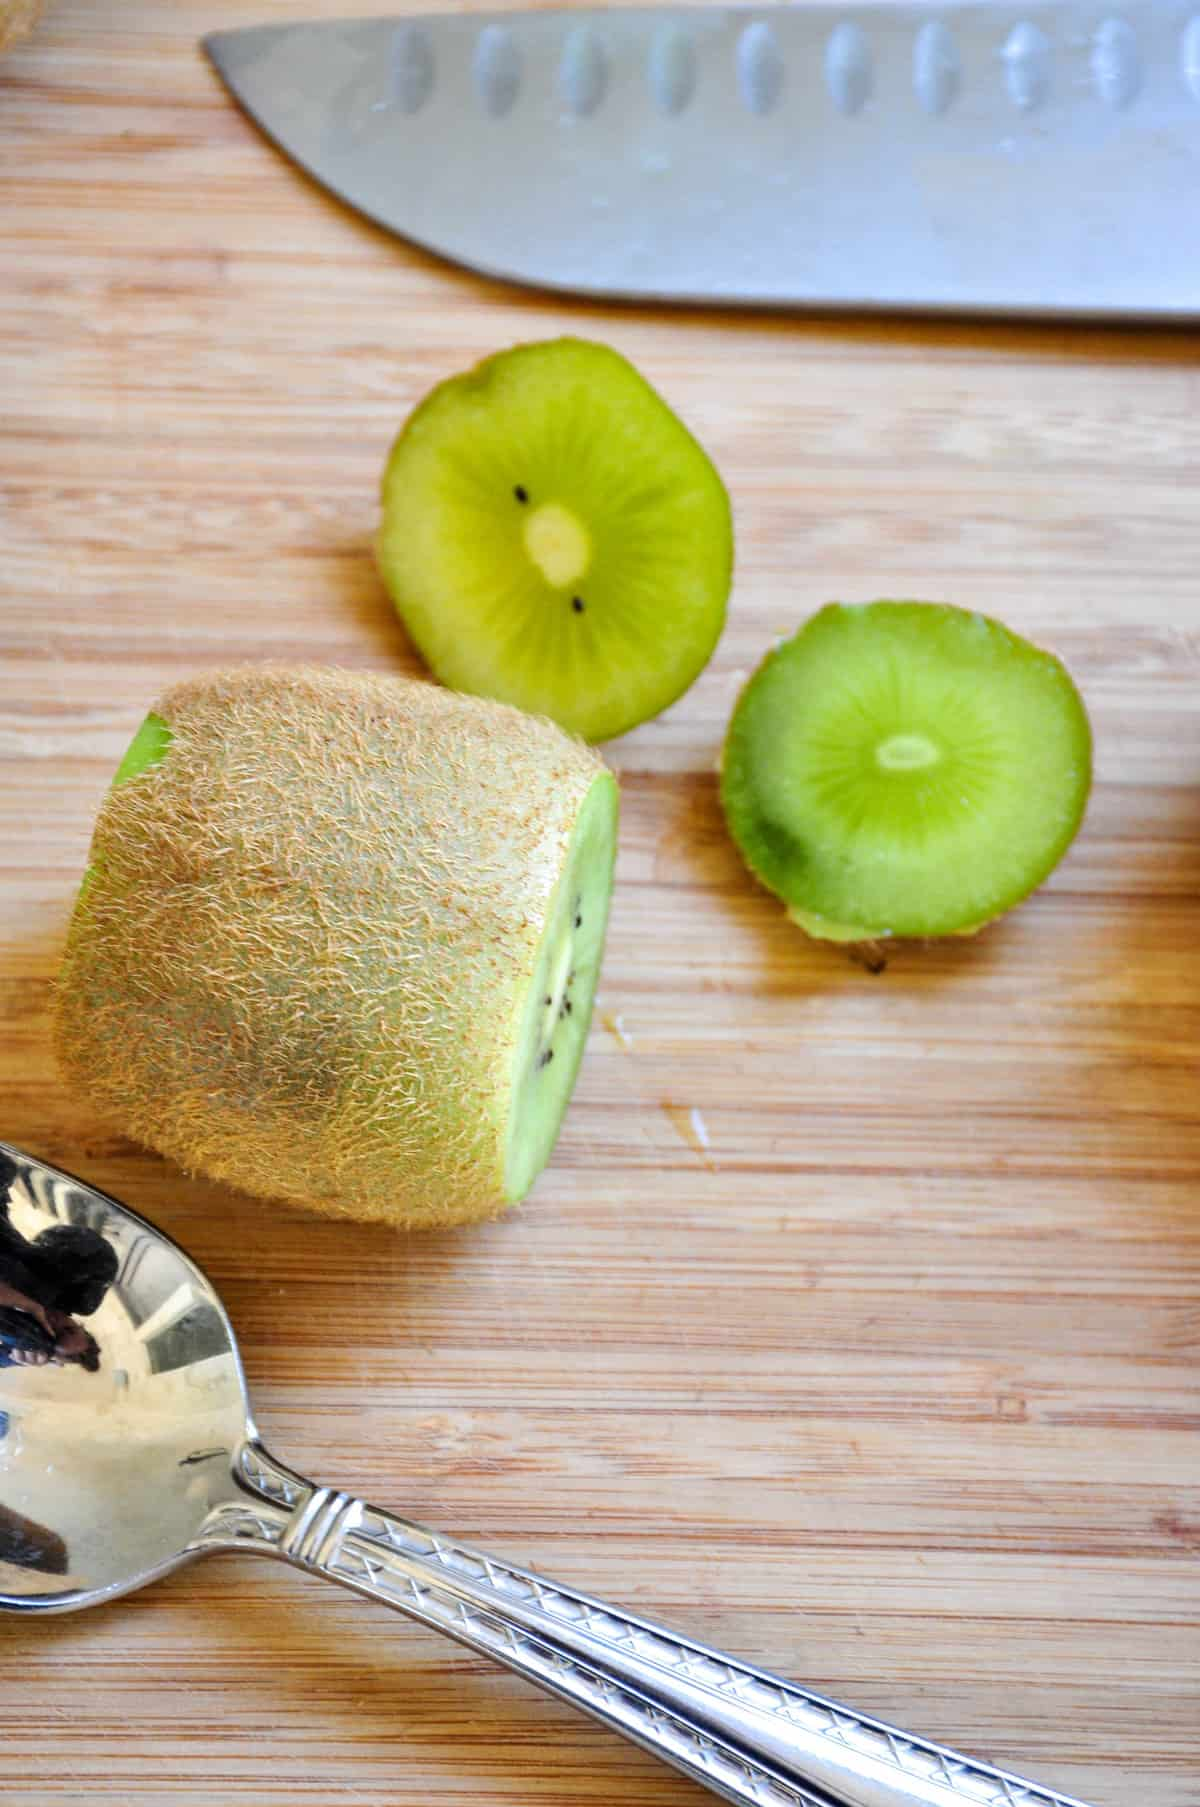 Kiwis with the ends sliced off